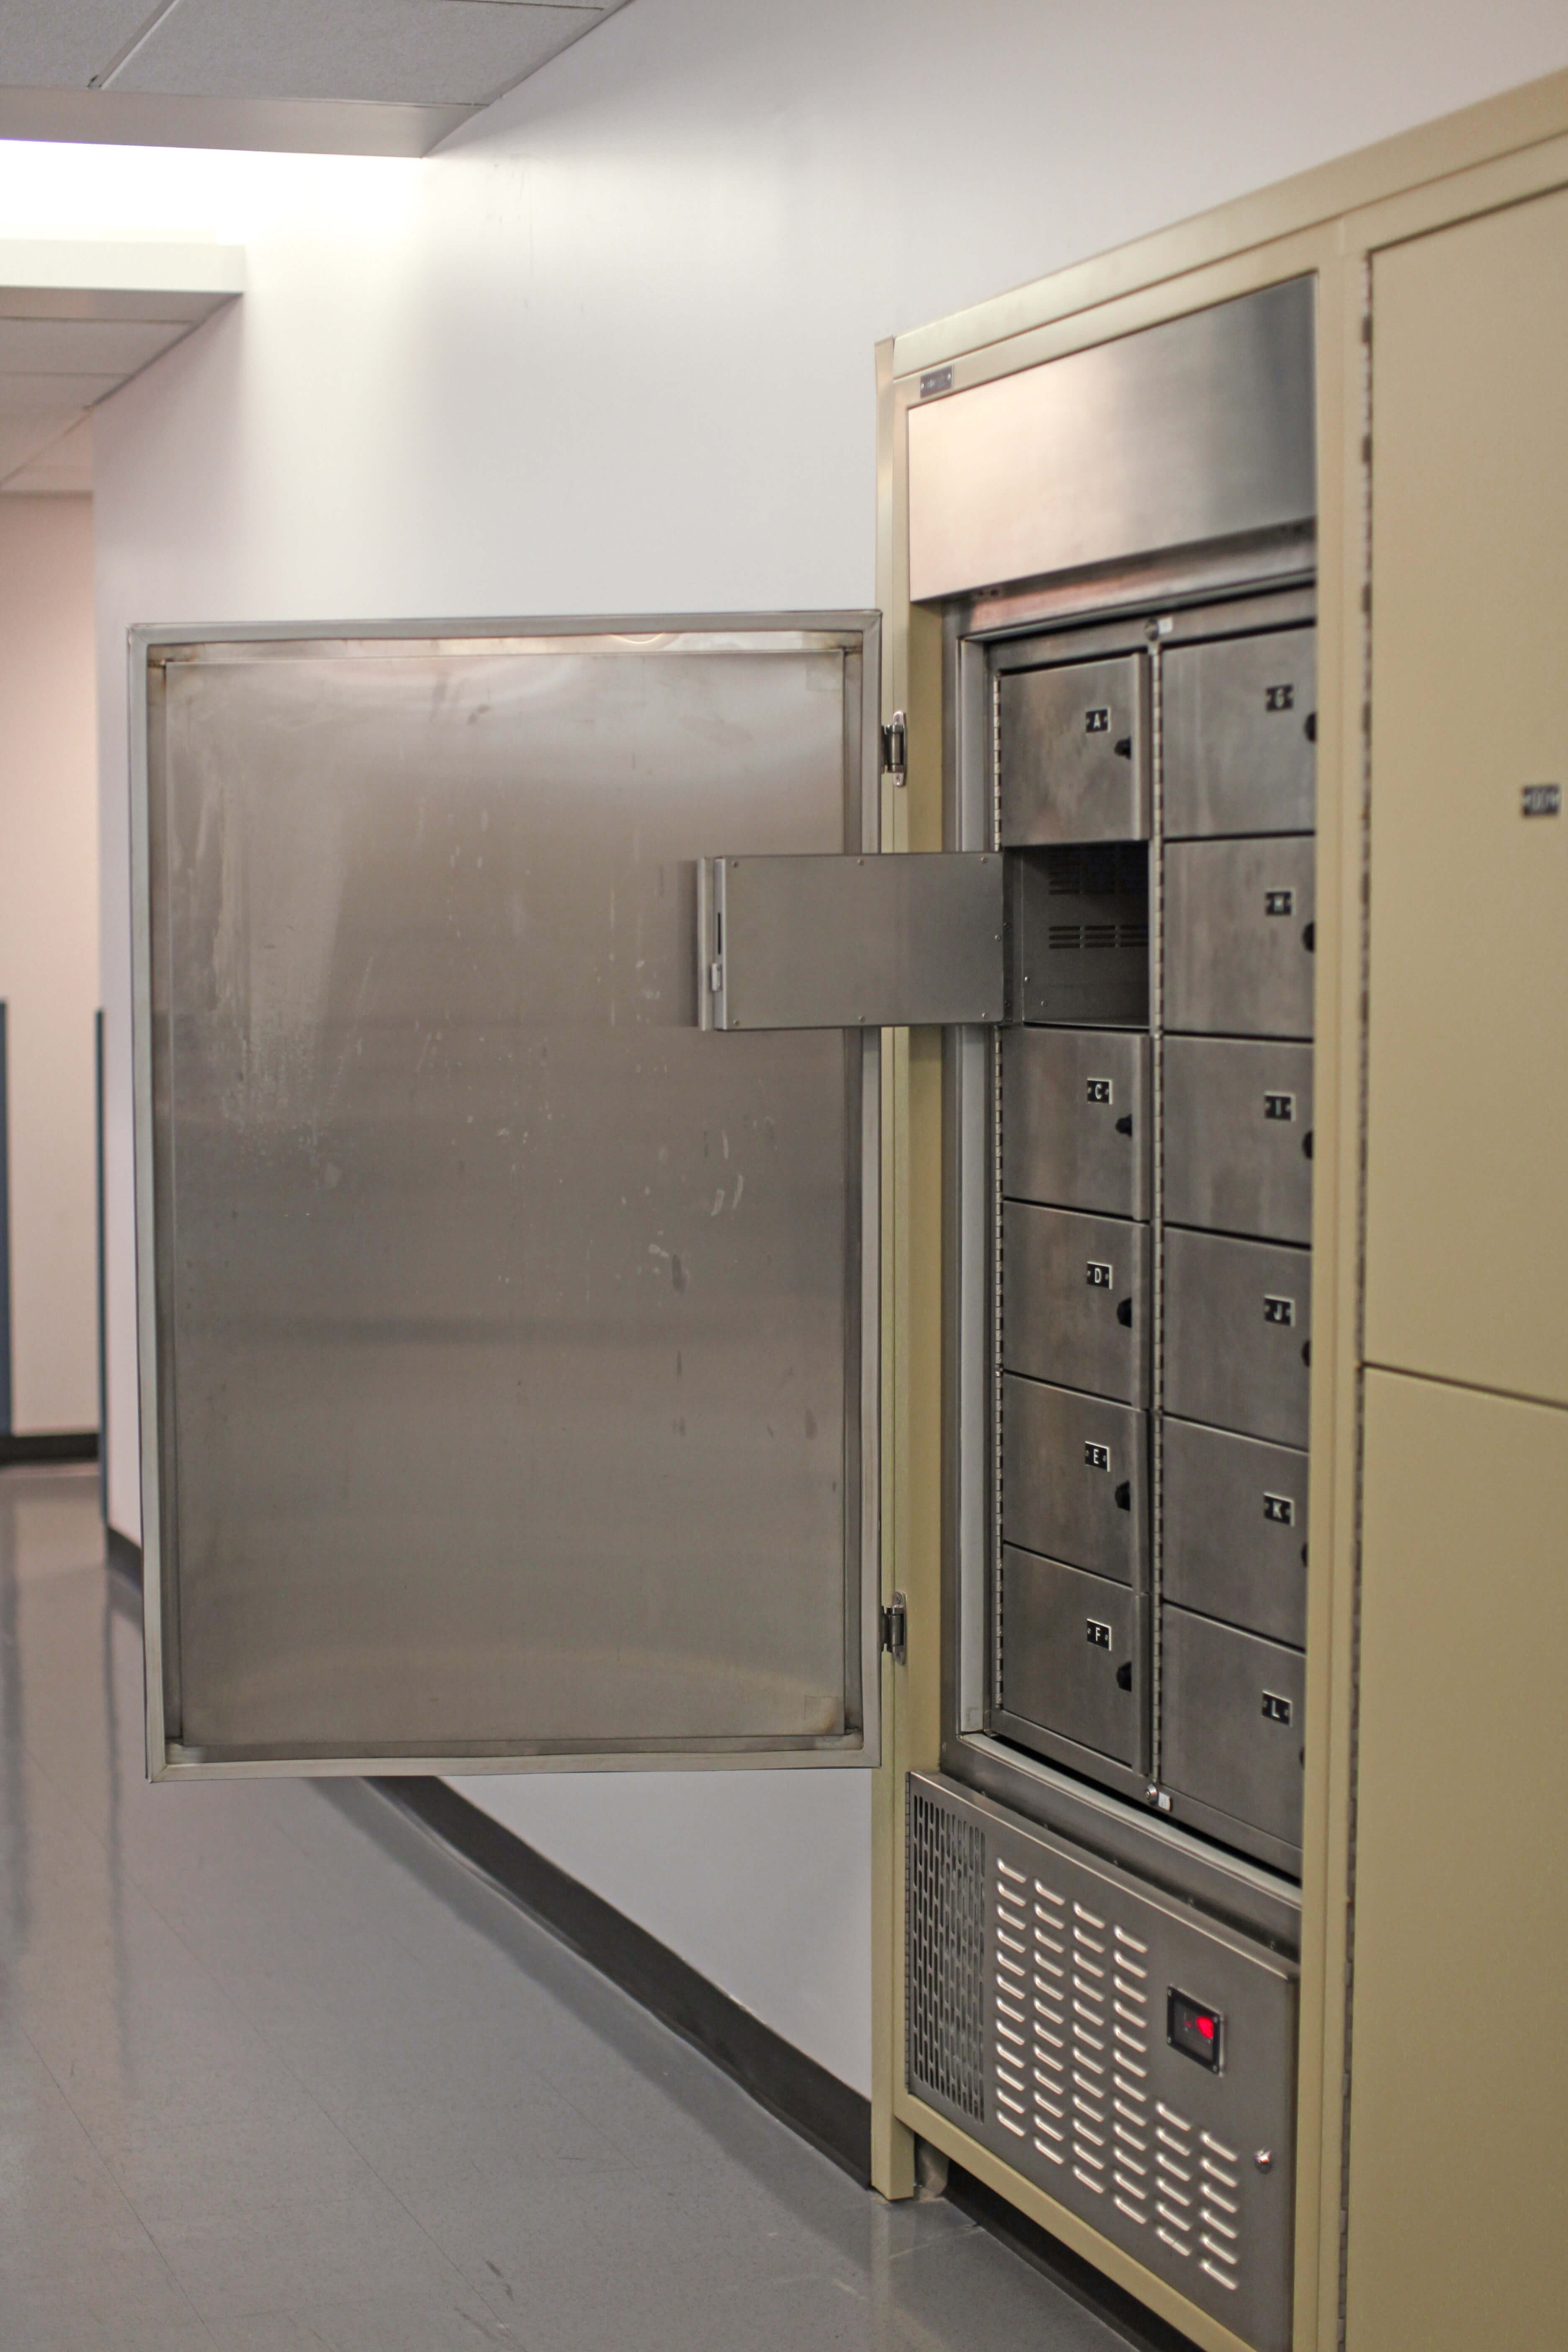 Refrigerator storage for short-term evidence at Bensalem Police Department